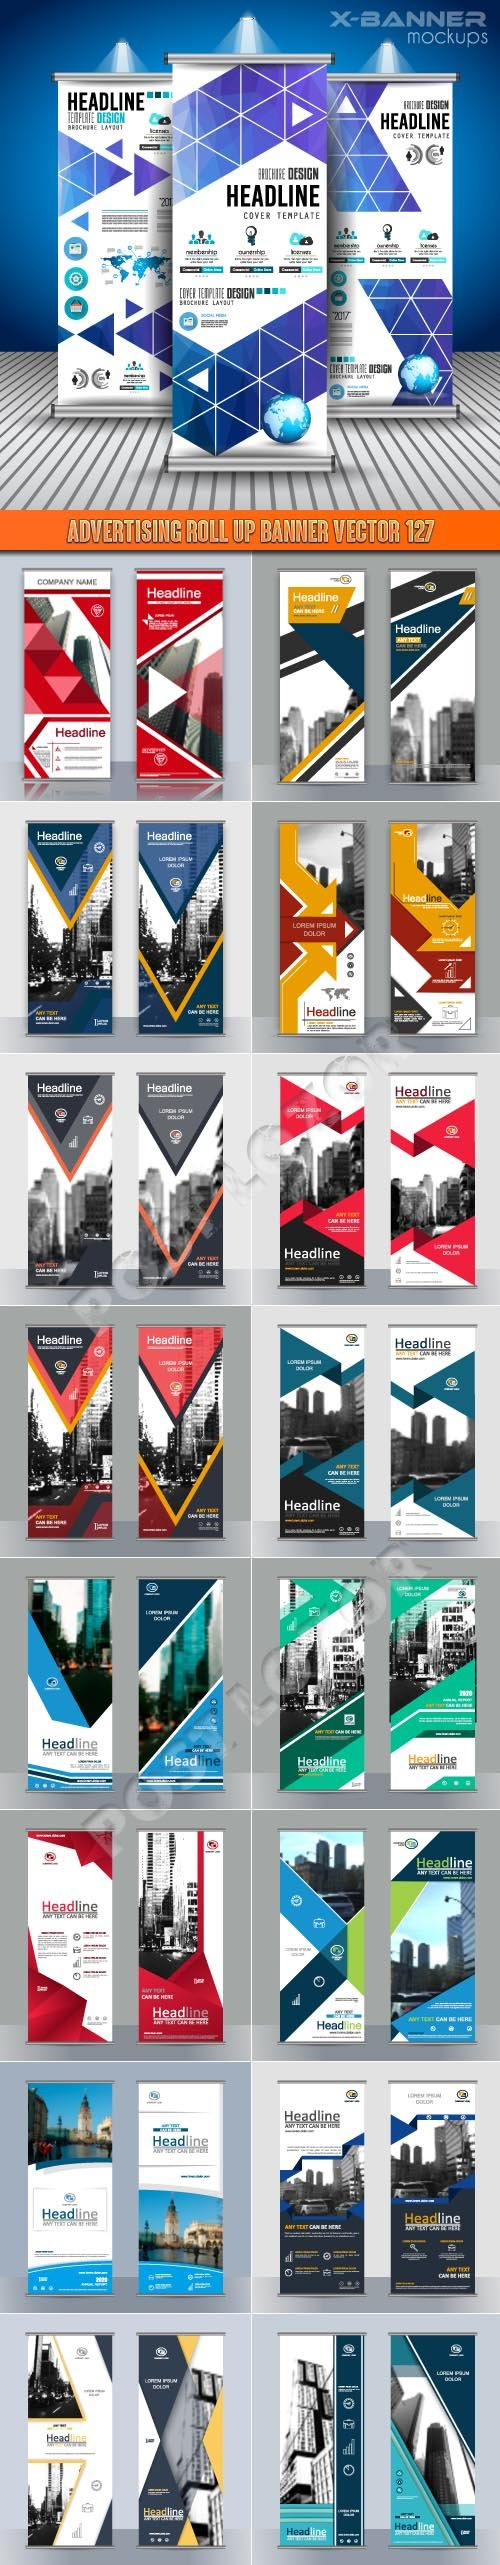 Advertising Roll up banner vector 127